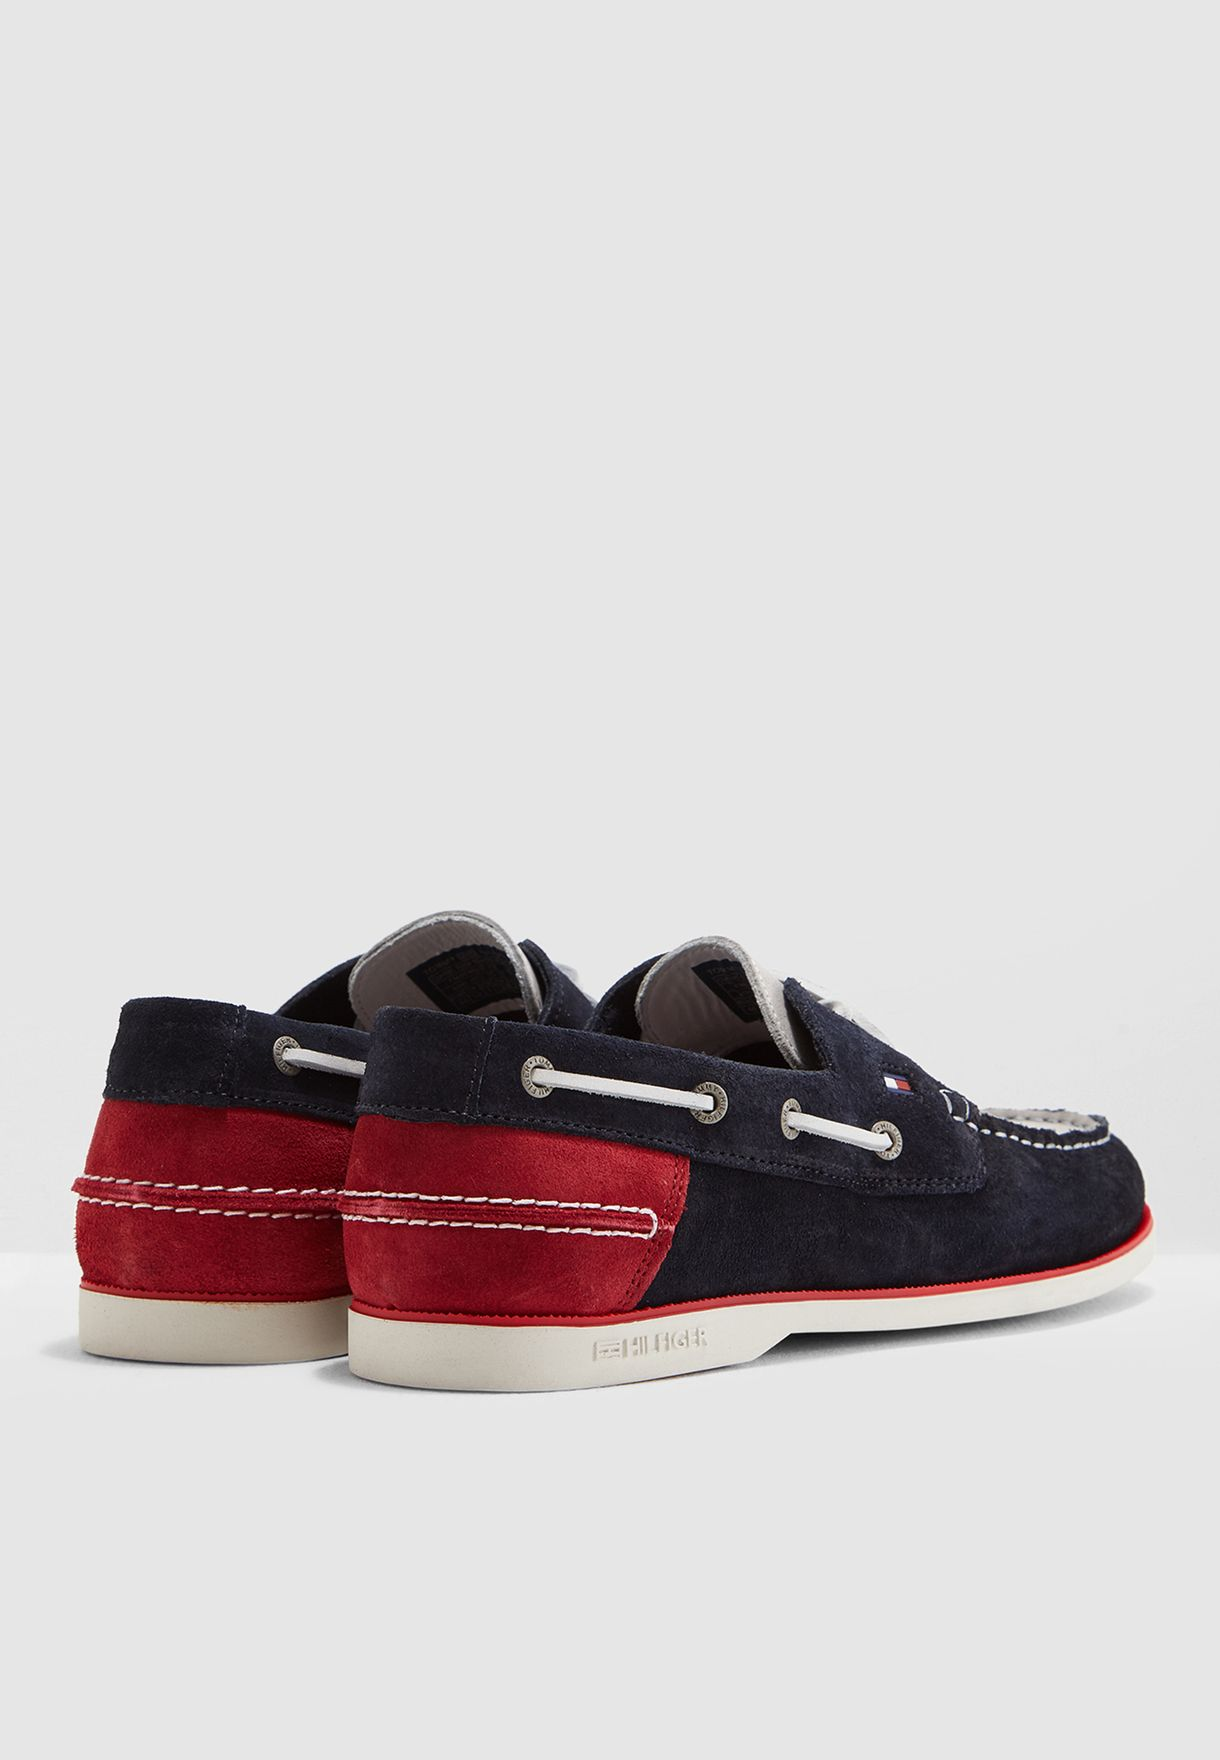 96a531a68b1af9 Shop Tommy Hilfiger navy Classic Suede Boat Shoes FM0FM02112020 for ...